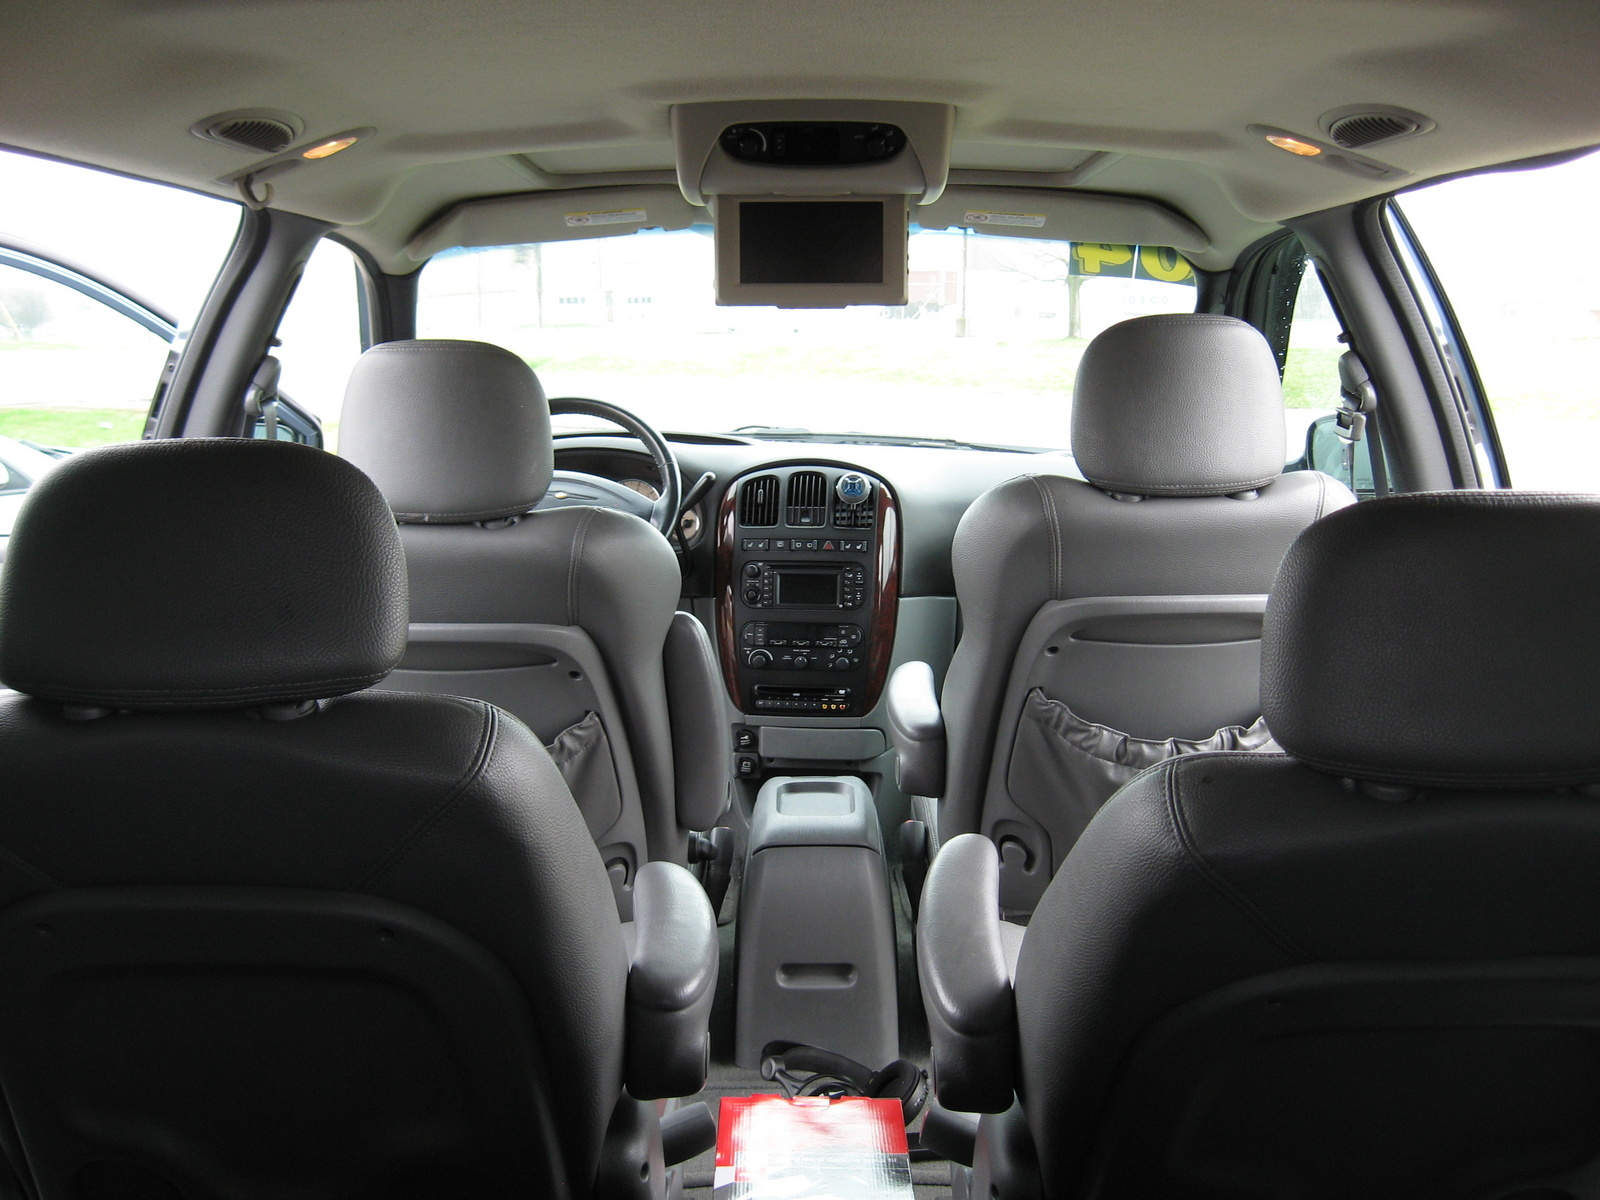 Town And Country Toyota >> 2004 Chrysler Town & Country - Pictures - CarGurus